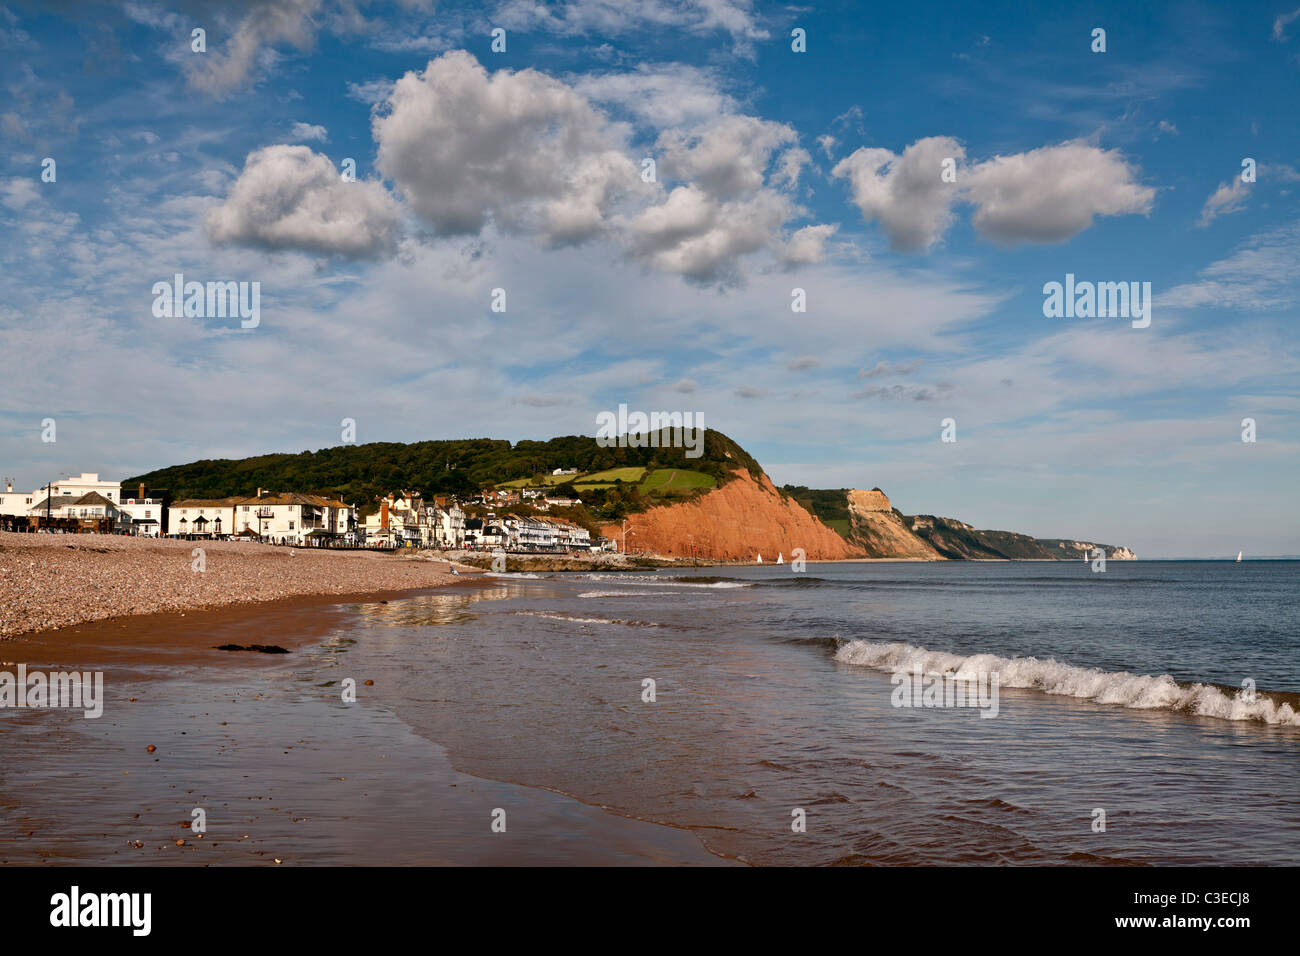 View of Sidmouth and its sandstone cliffs - Stock Image